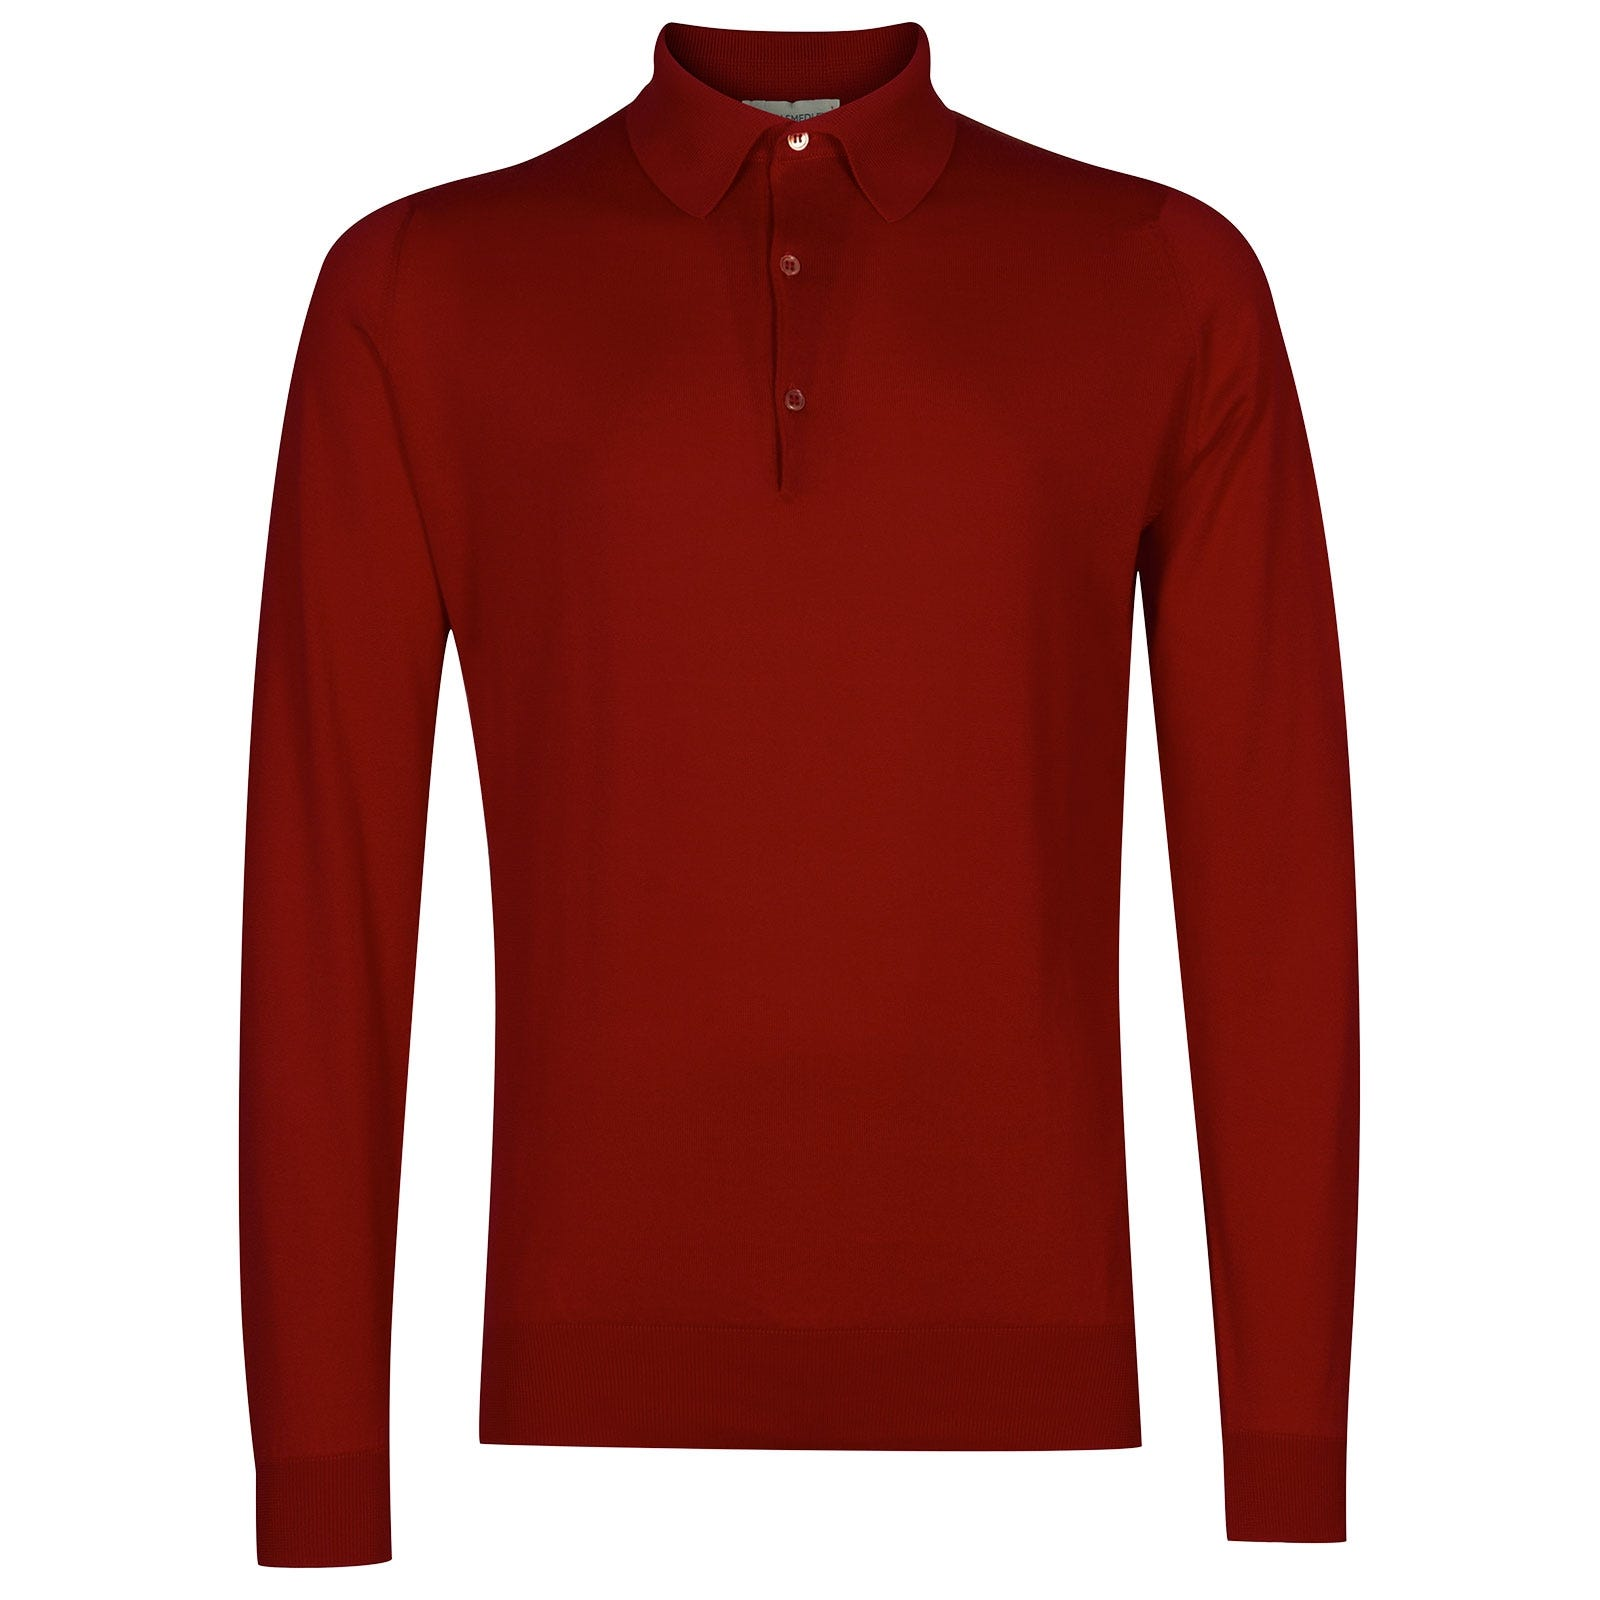 John Smedley Bradwell Sea Island Cotton Shirt in Thermal Red-XL